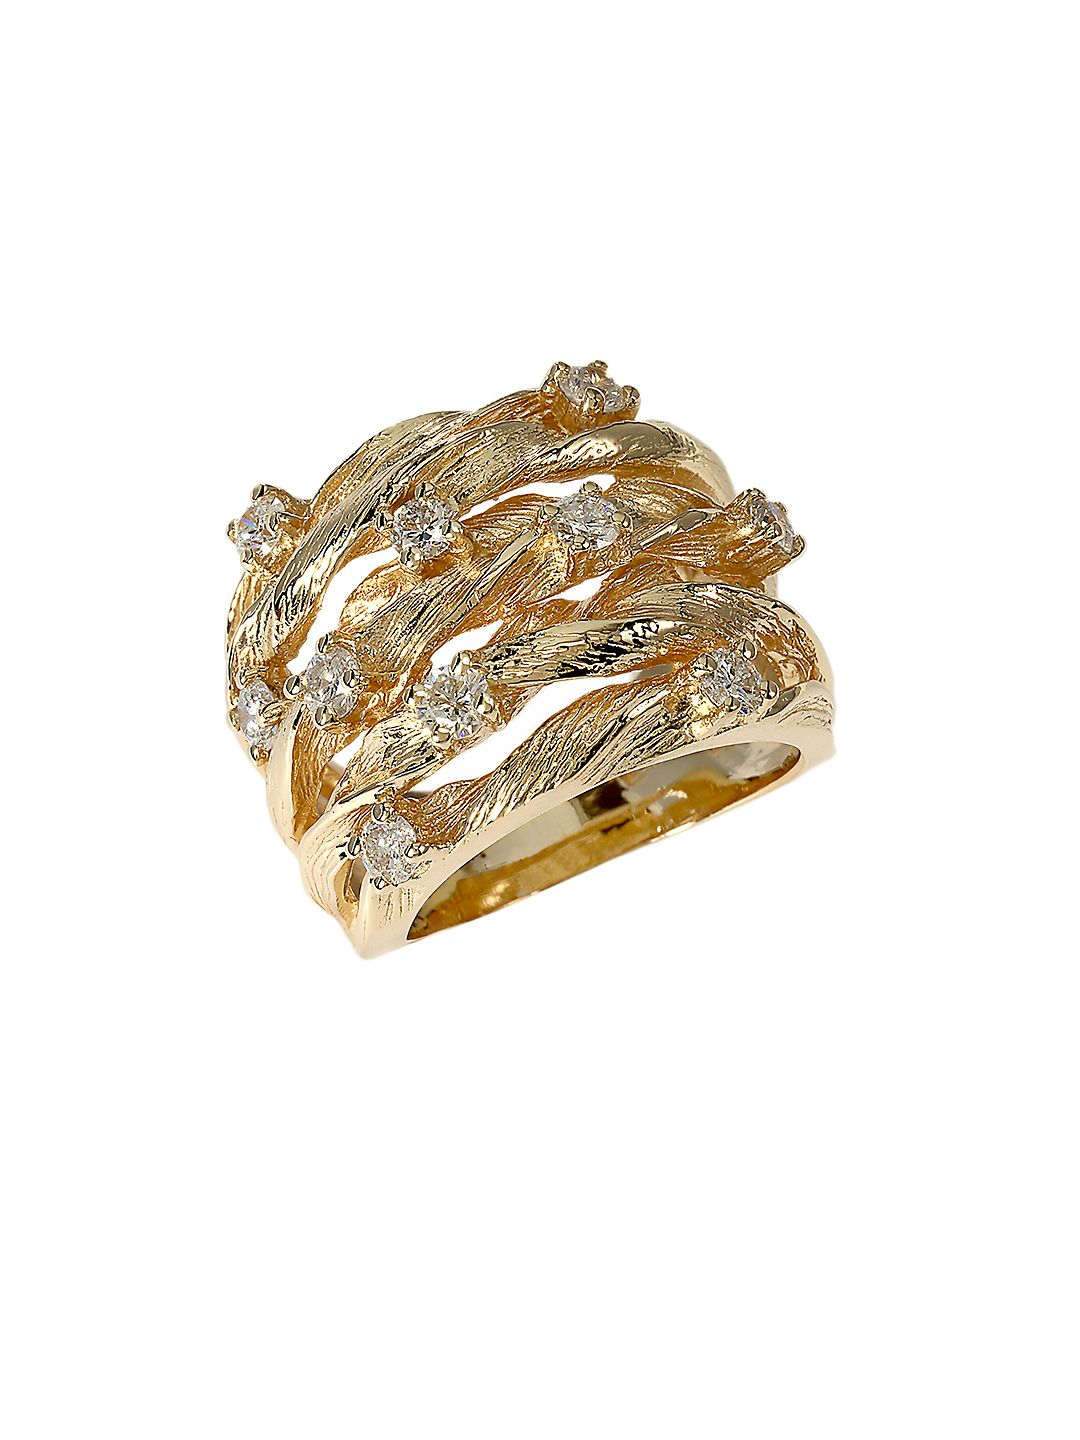 Diamond And 14K Yellow Gold Ring, 0.98 TCW